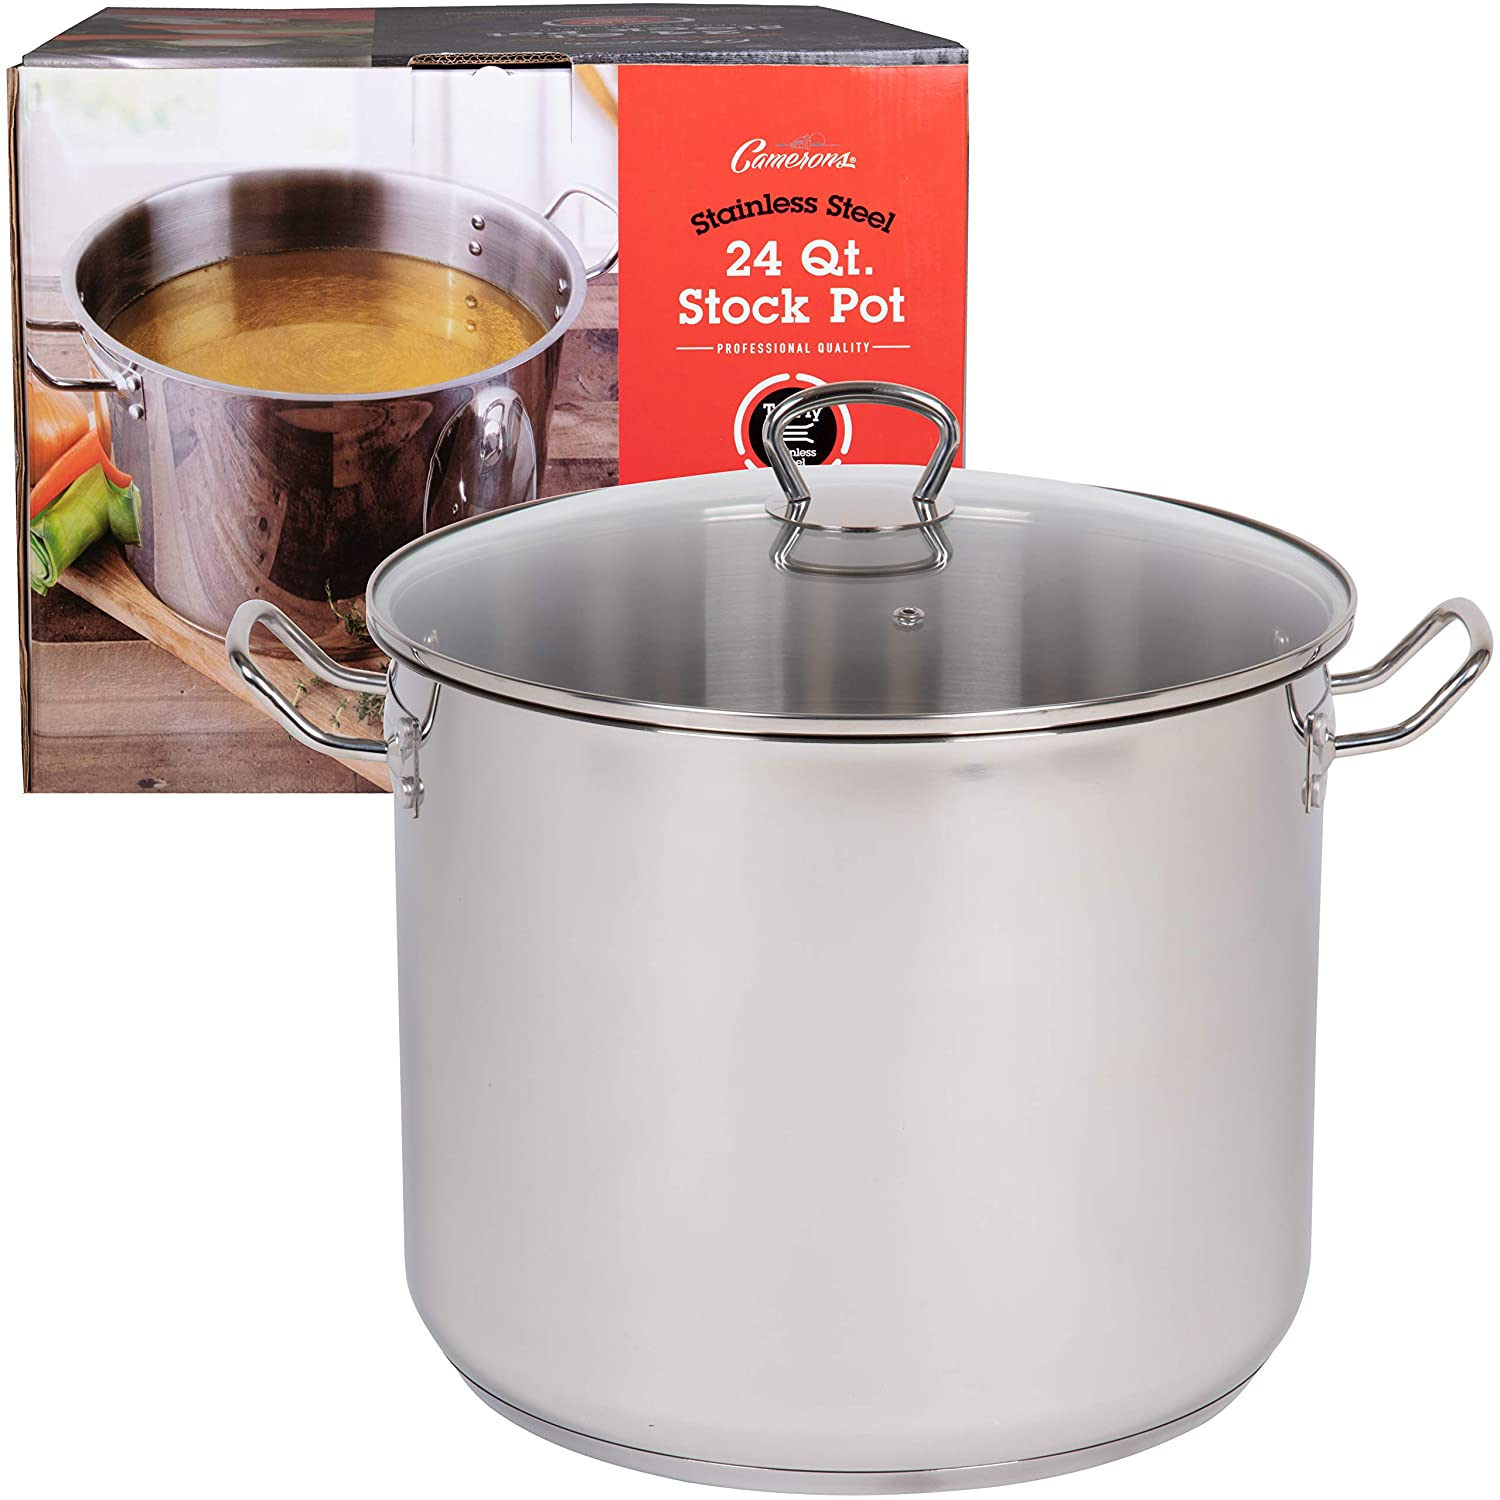 24 Quart Stock Pot- All Purpose, Stainless Steel Cooking Pot by ...